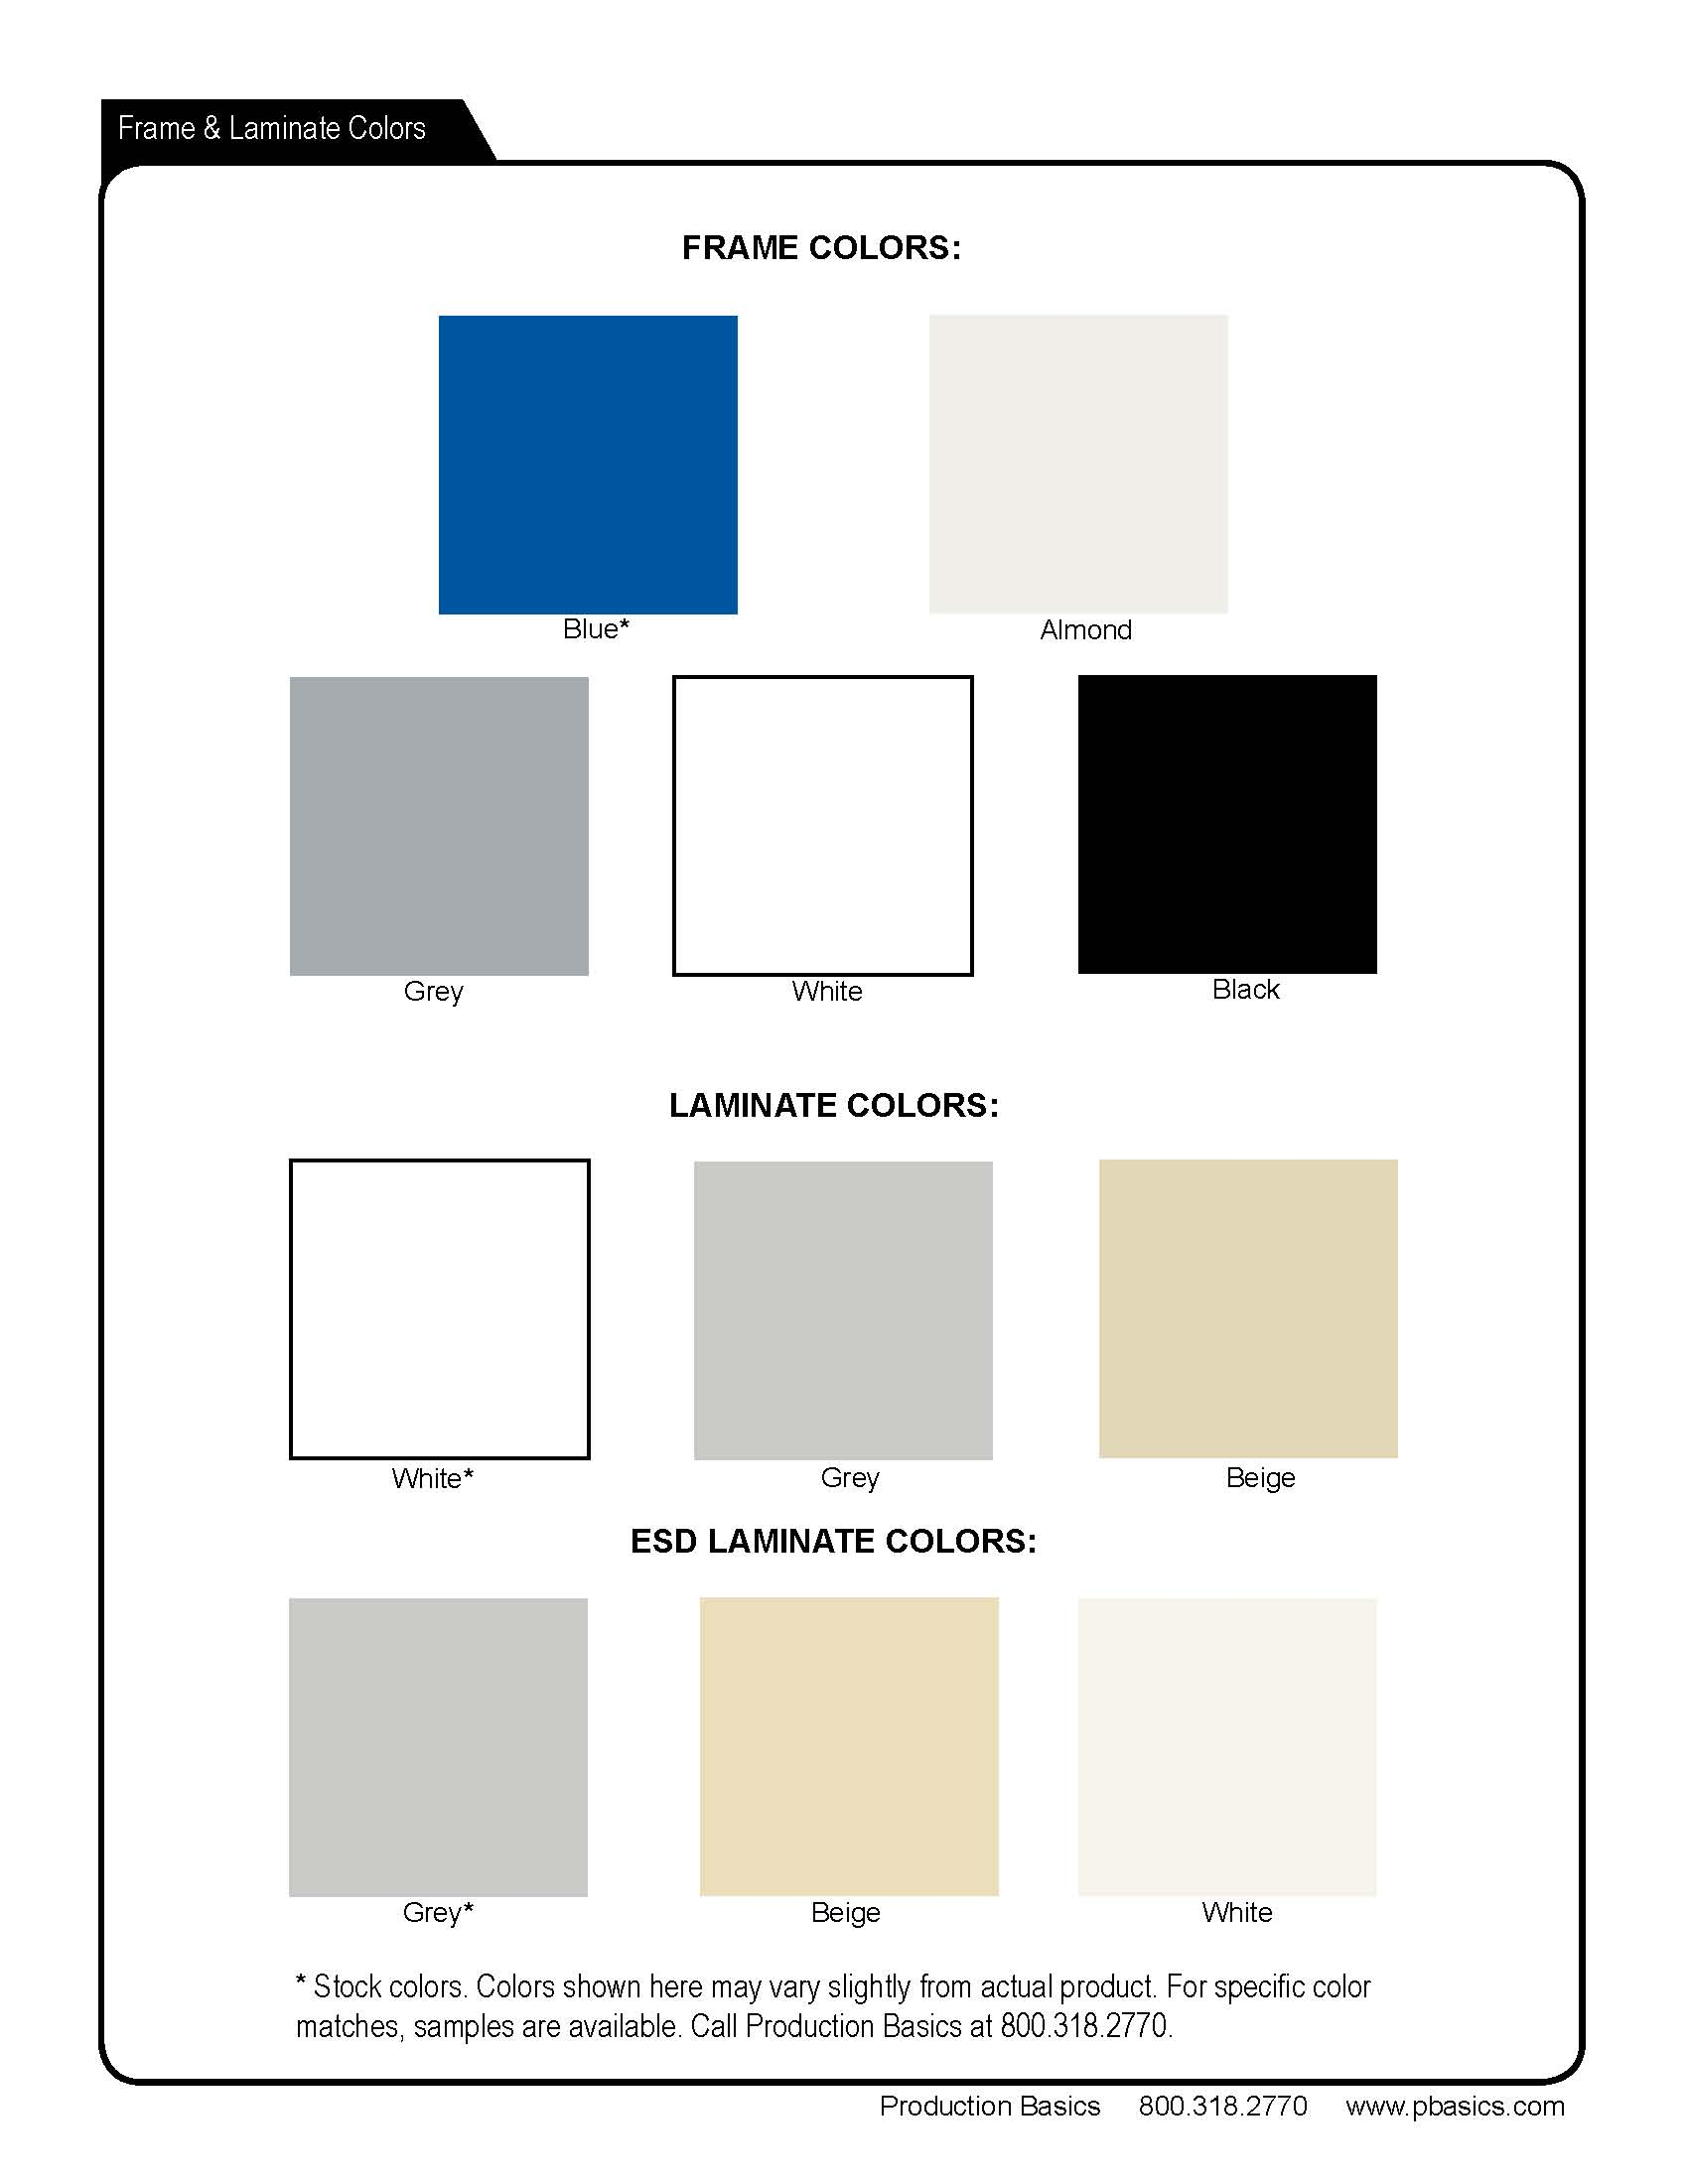 Pbasics Frame and Laminate Color Chart